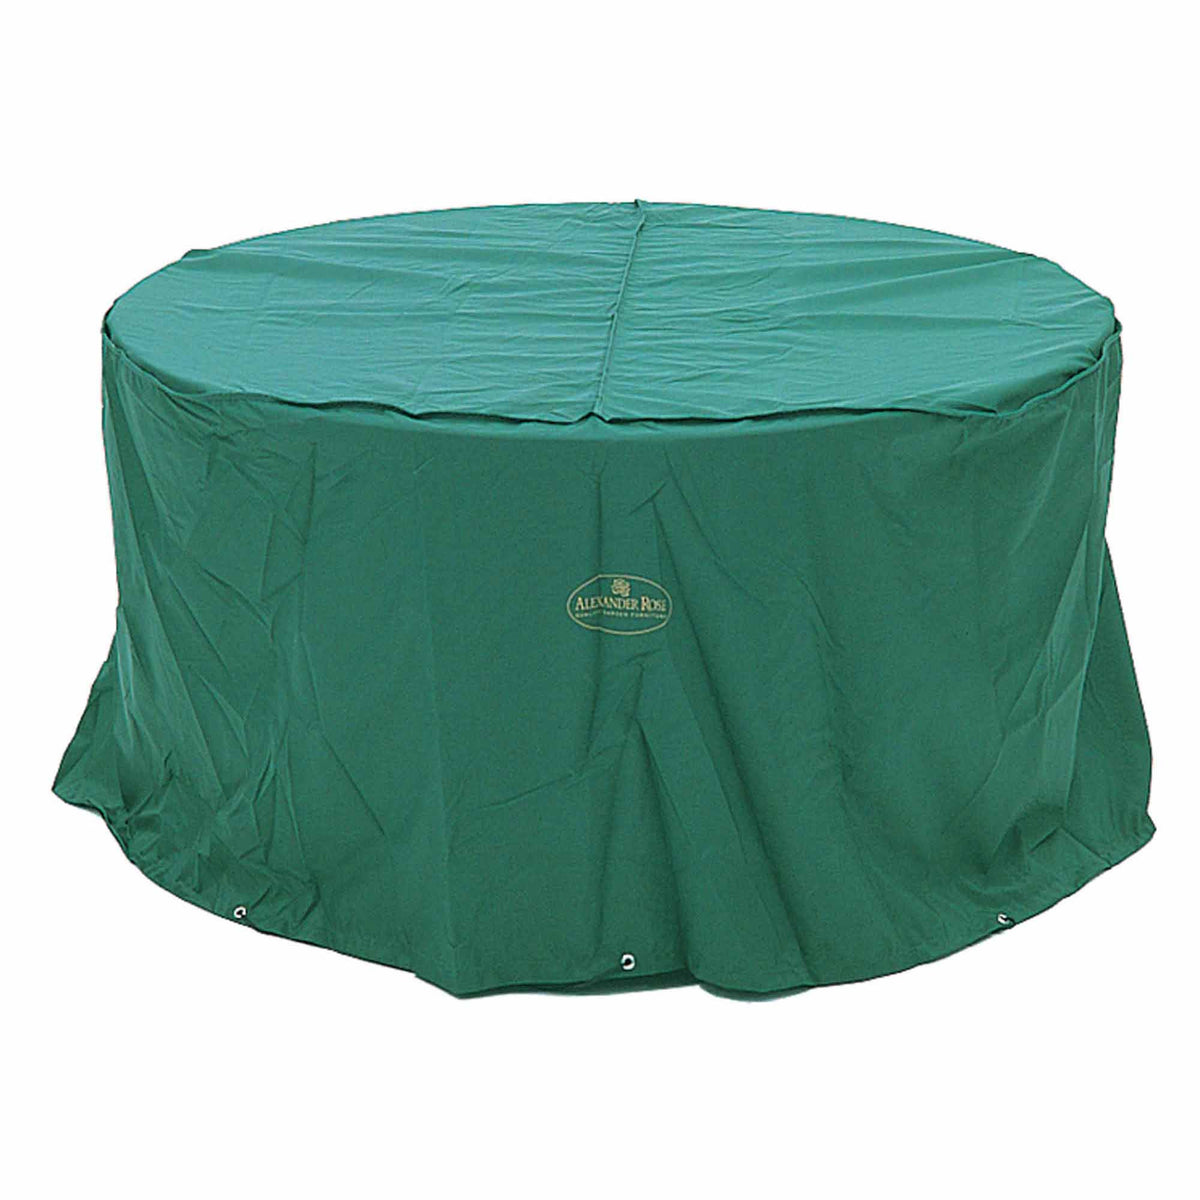 Alexander Rose Round Table Cover 13m